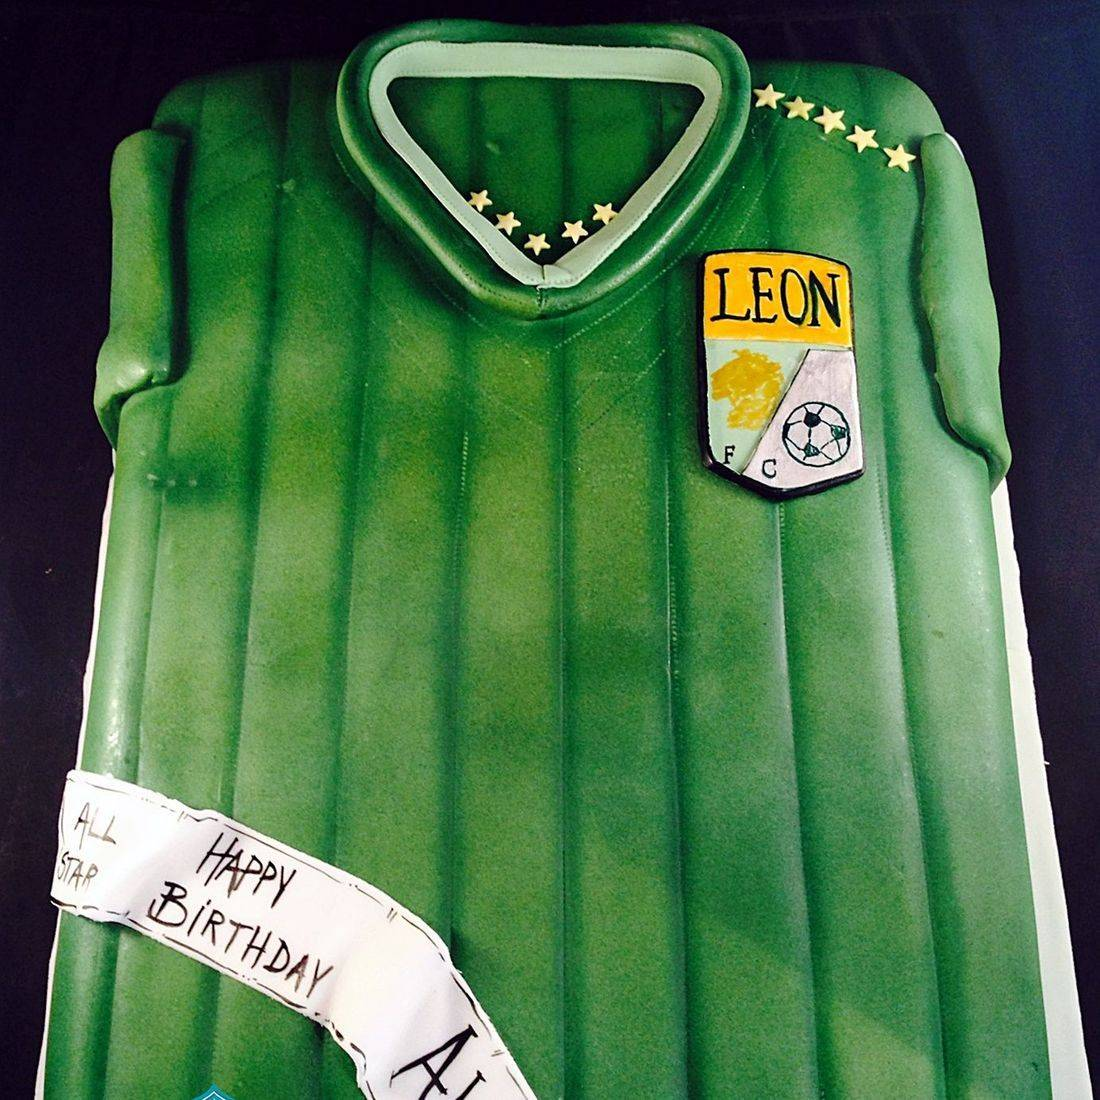 Leon Shirt Cake Dimensional Cake Milwaukee